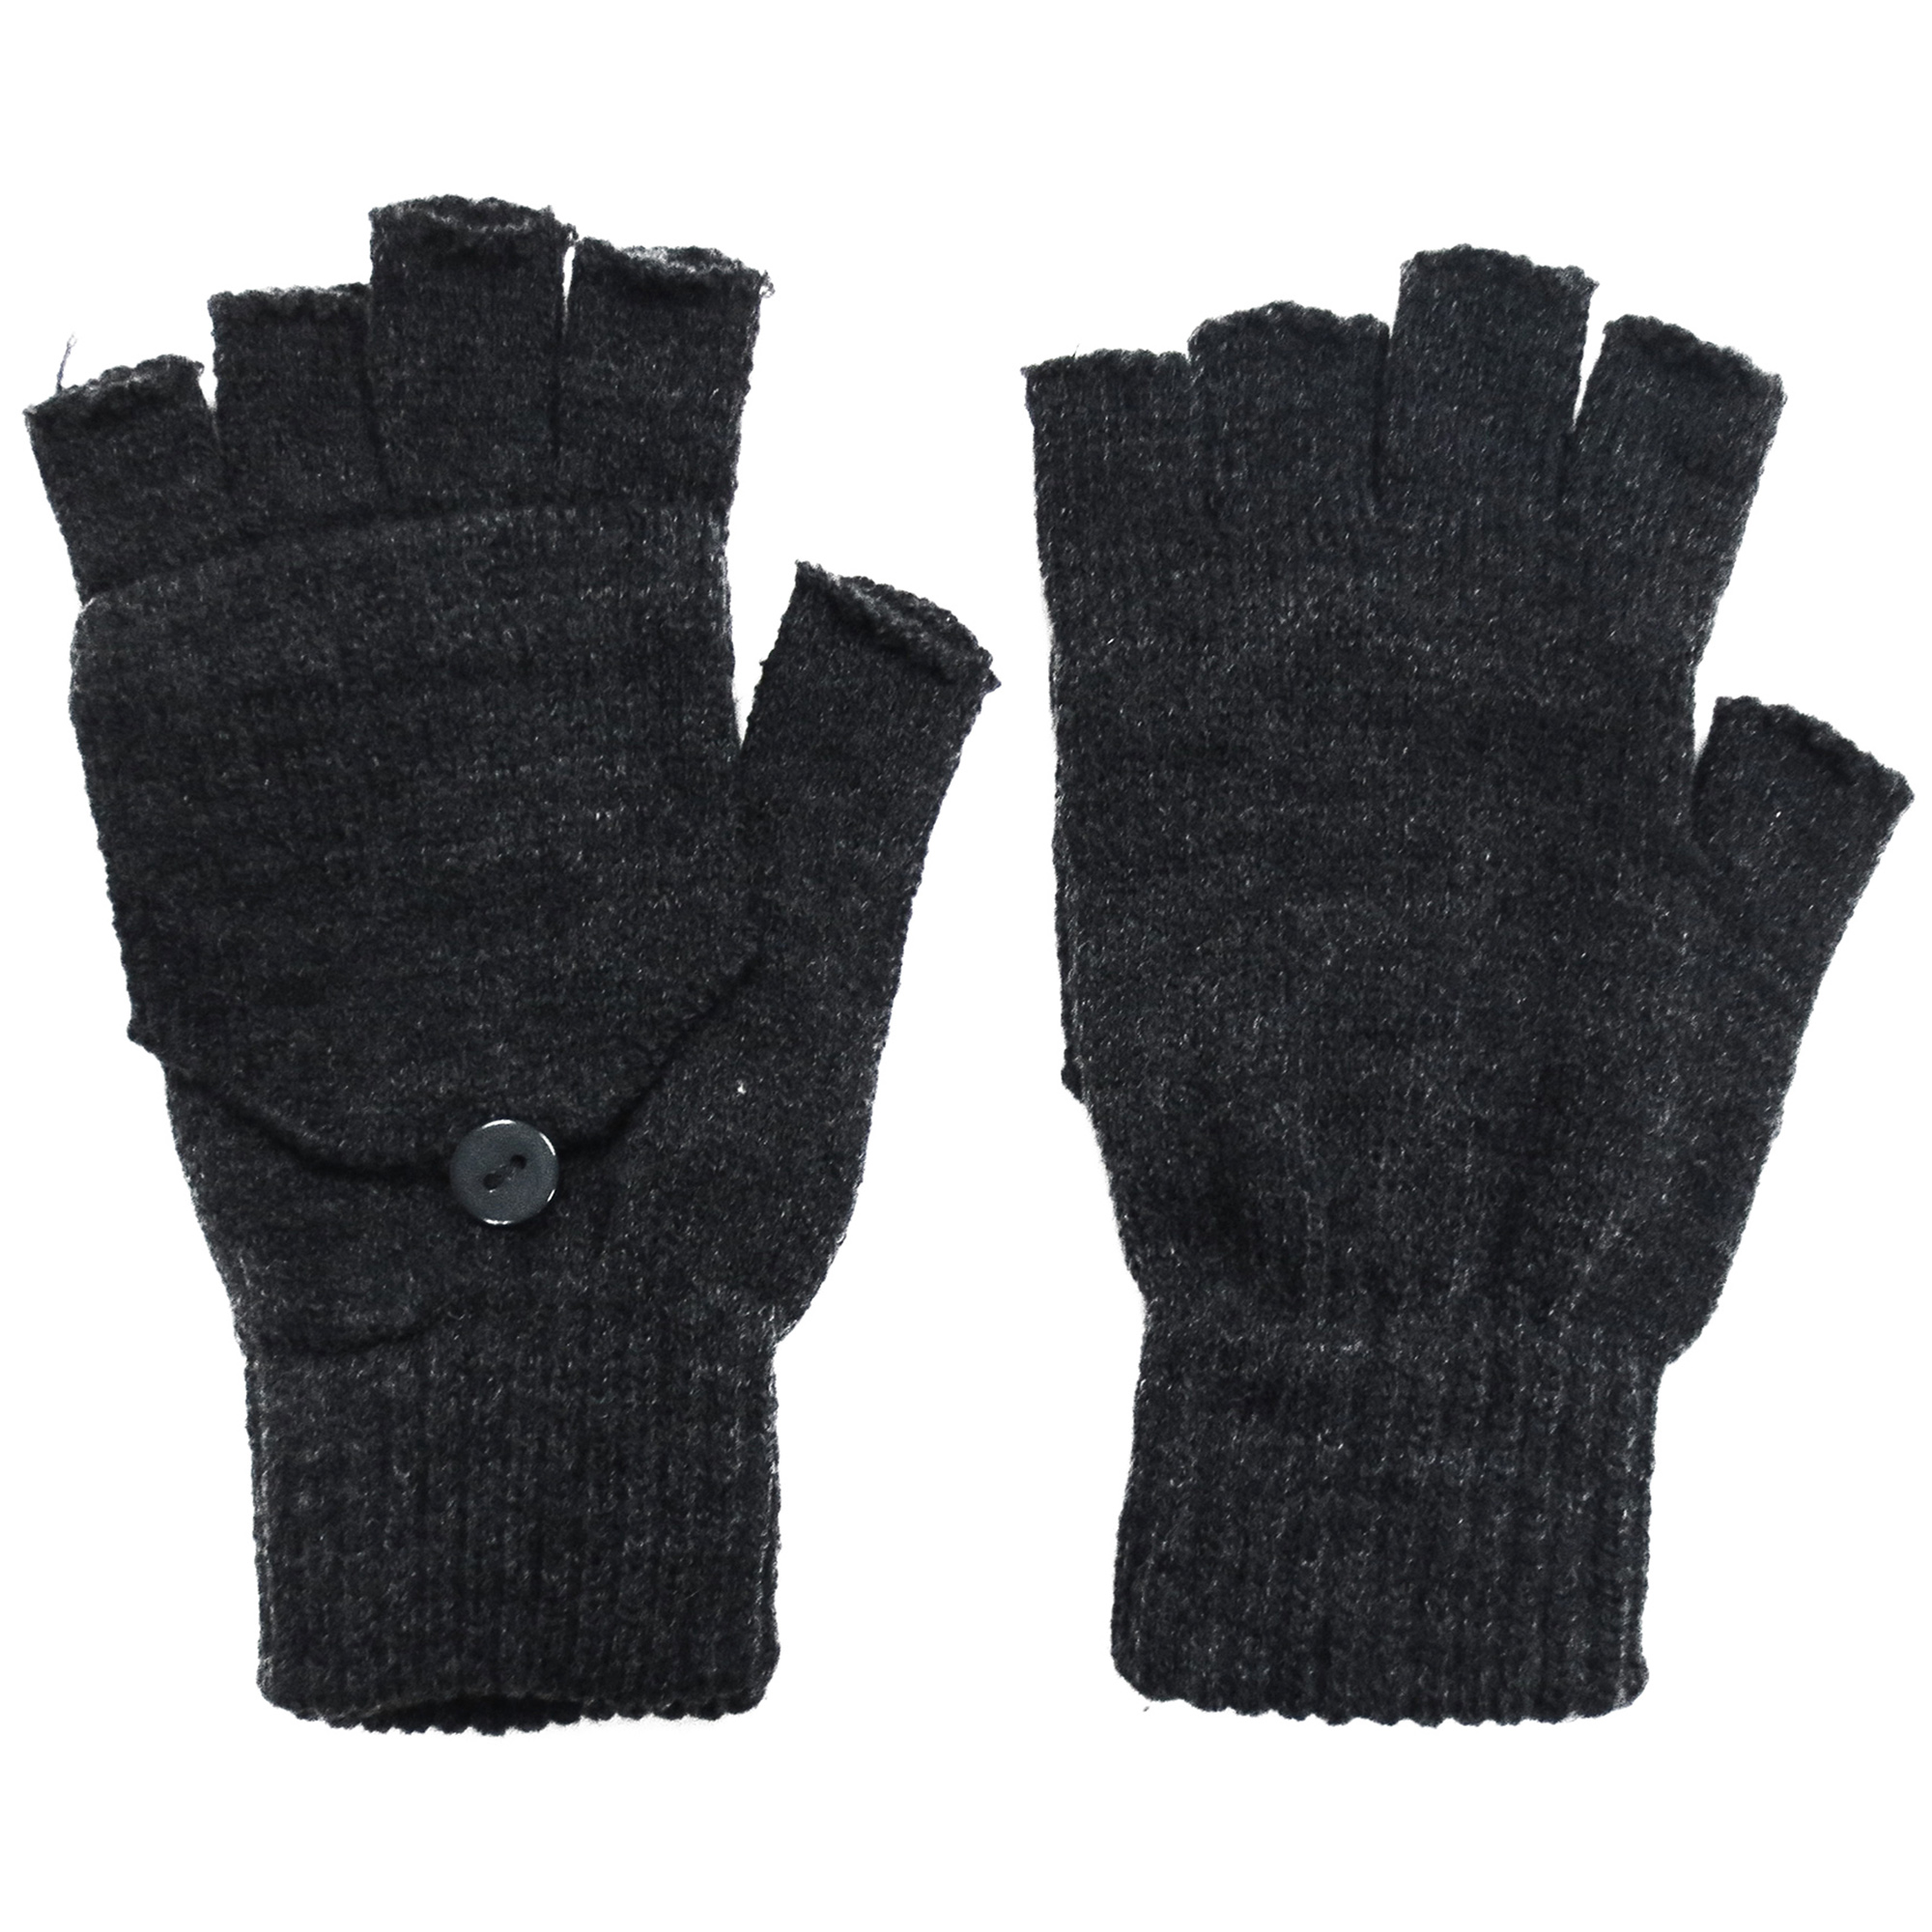 Winter Fingerless Gloves with Flap Cover Mitten Gloves, 56_Charcoal